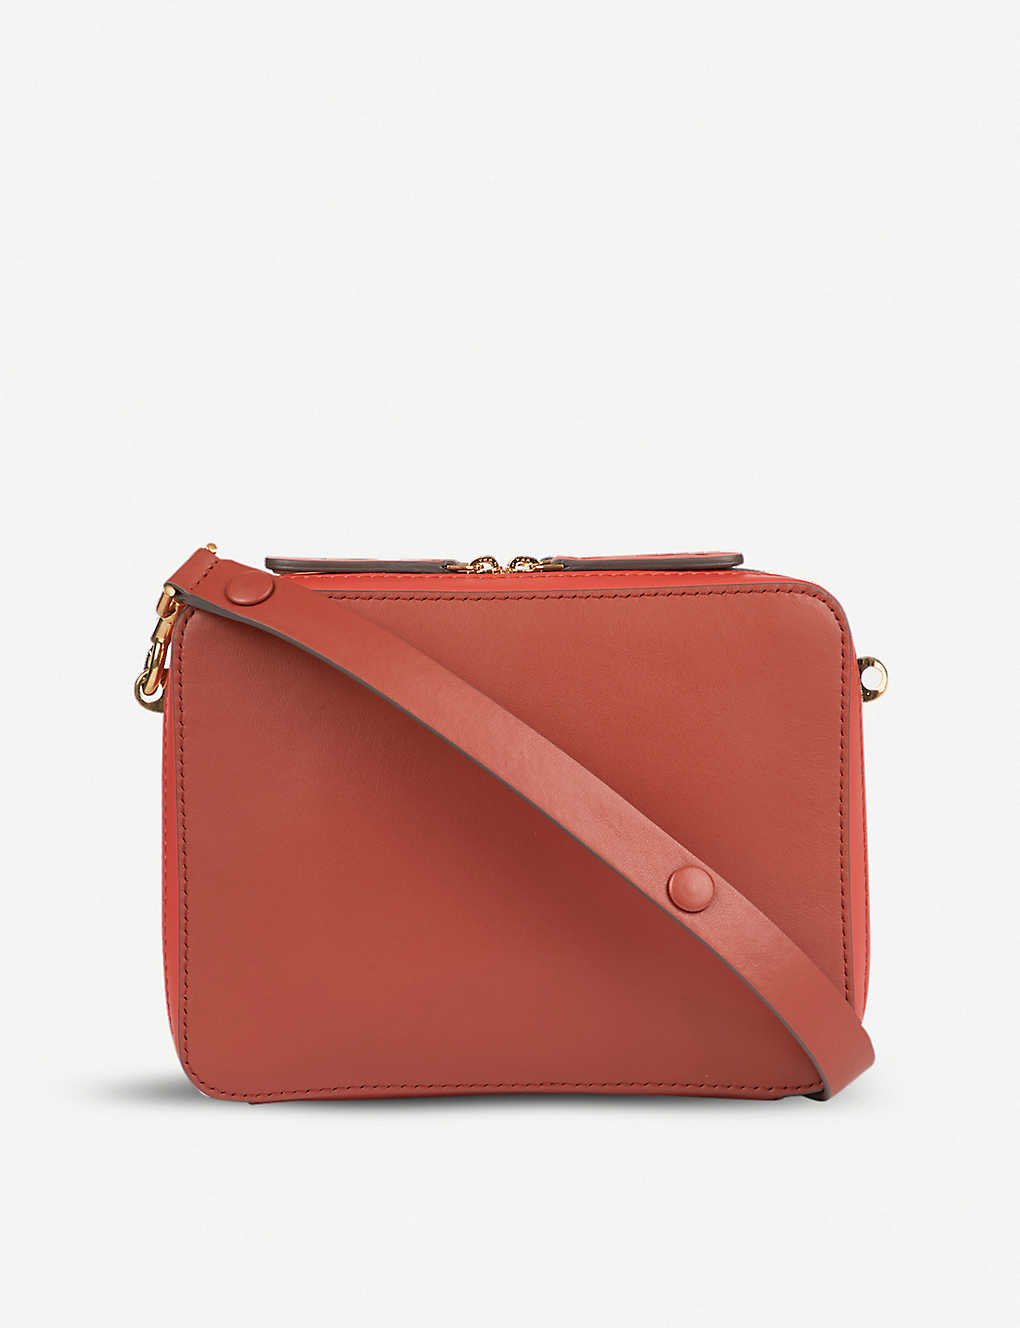 13eee01c57 ANYA HINDMARCH - The Stack Double leather cross-body bag ...